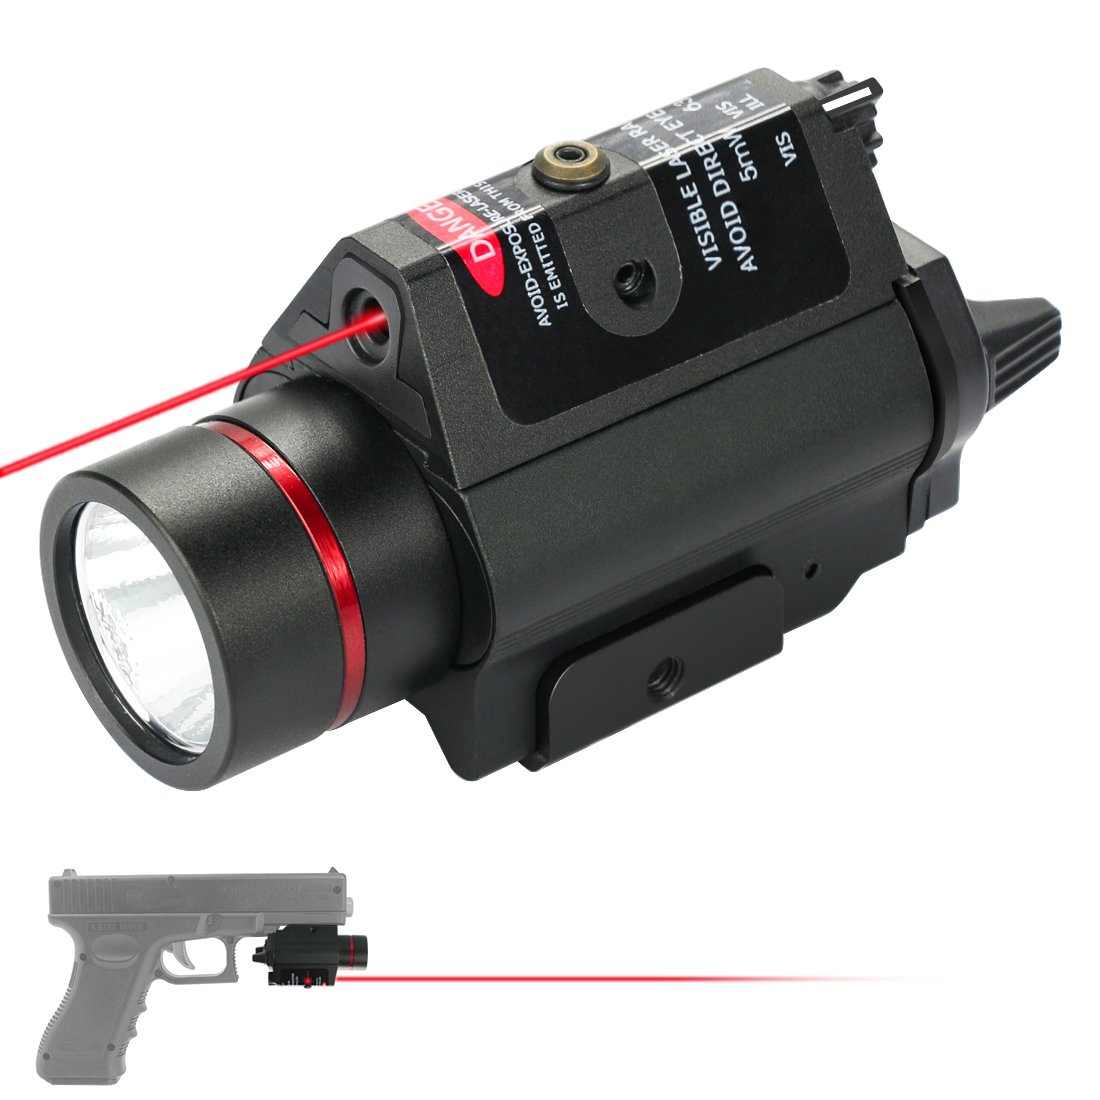 Feyachi [UPDATED] Red Laser + 200 Lumen Flashlight Combo with Compact Rail Mount for Pistol Handgun by Feyachi